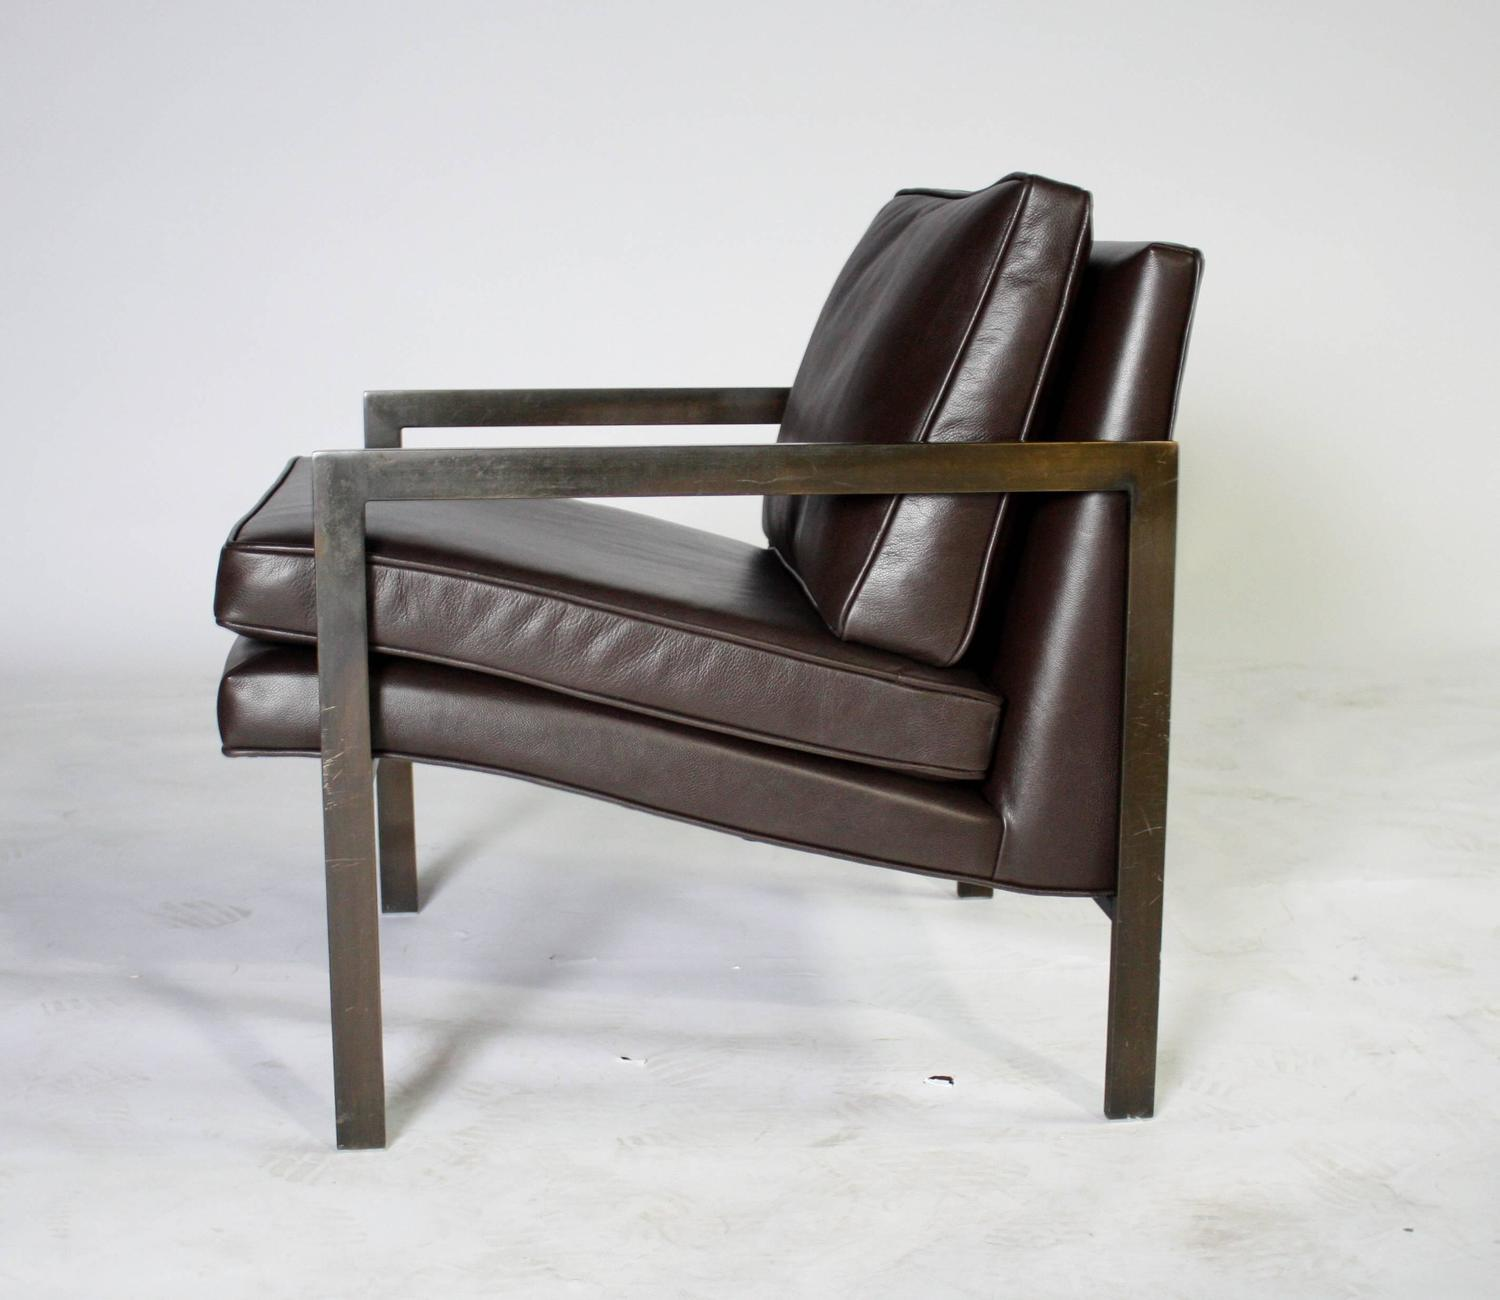 Milo Baughman Bronze and Leather Lounge Chair at 1stdibs